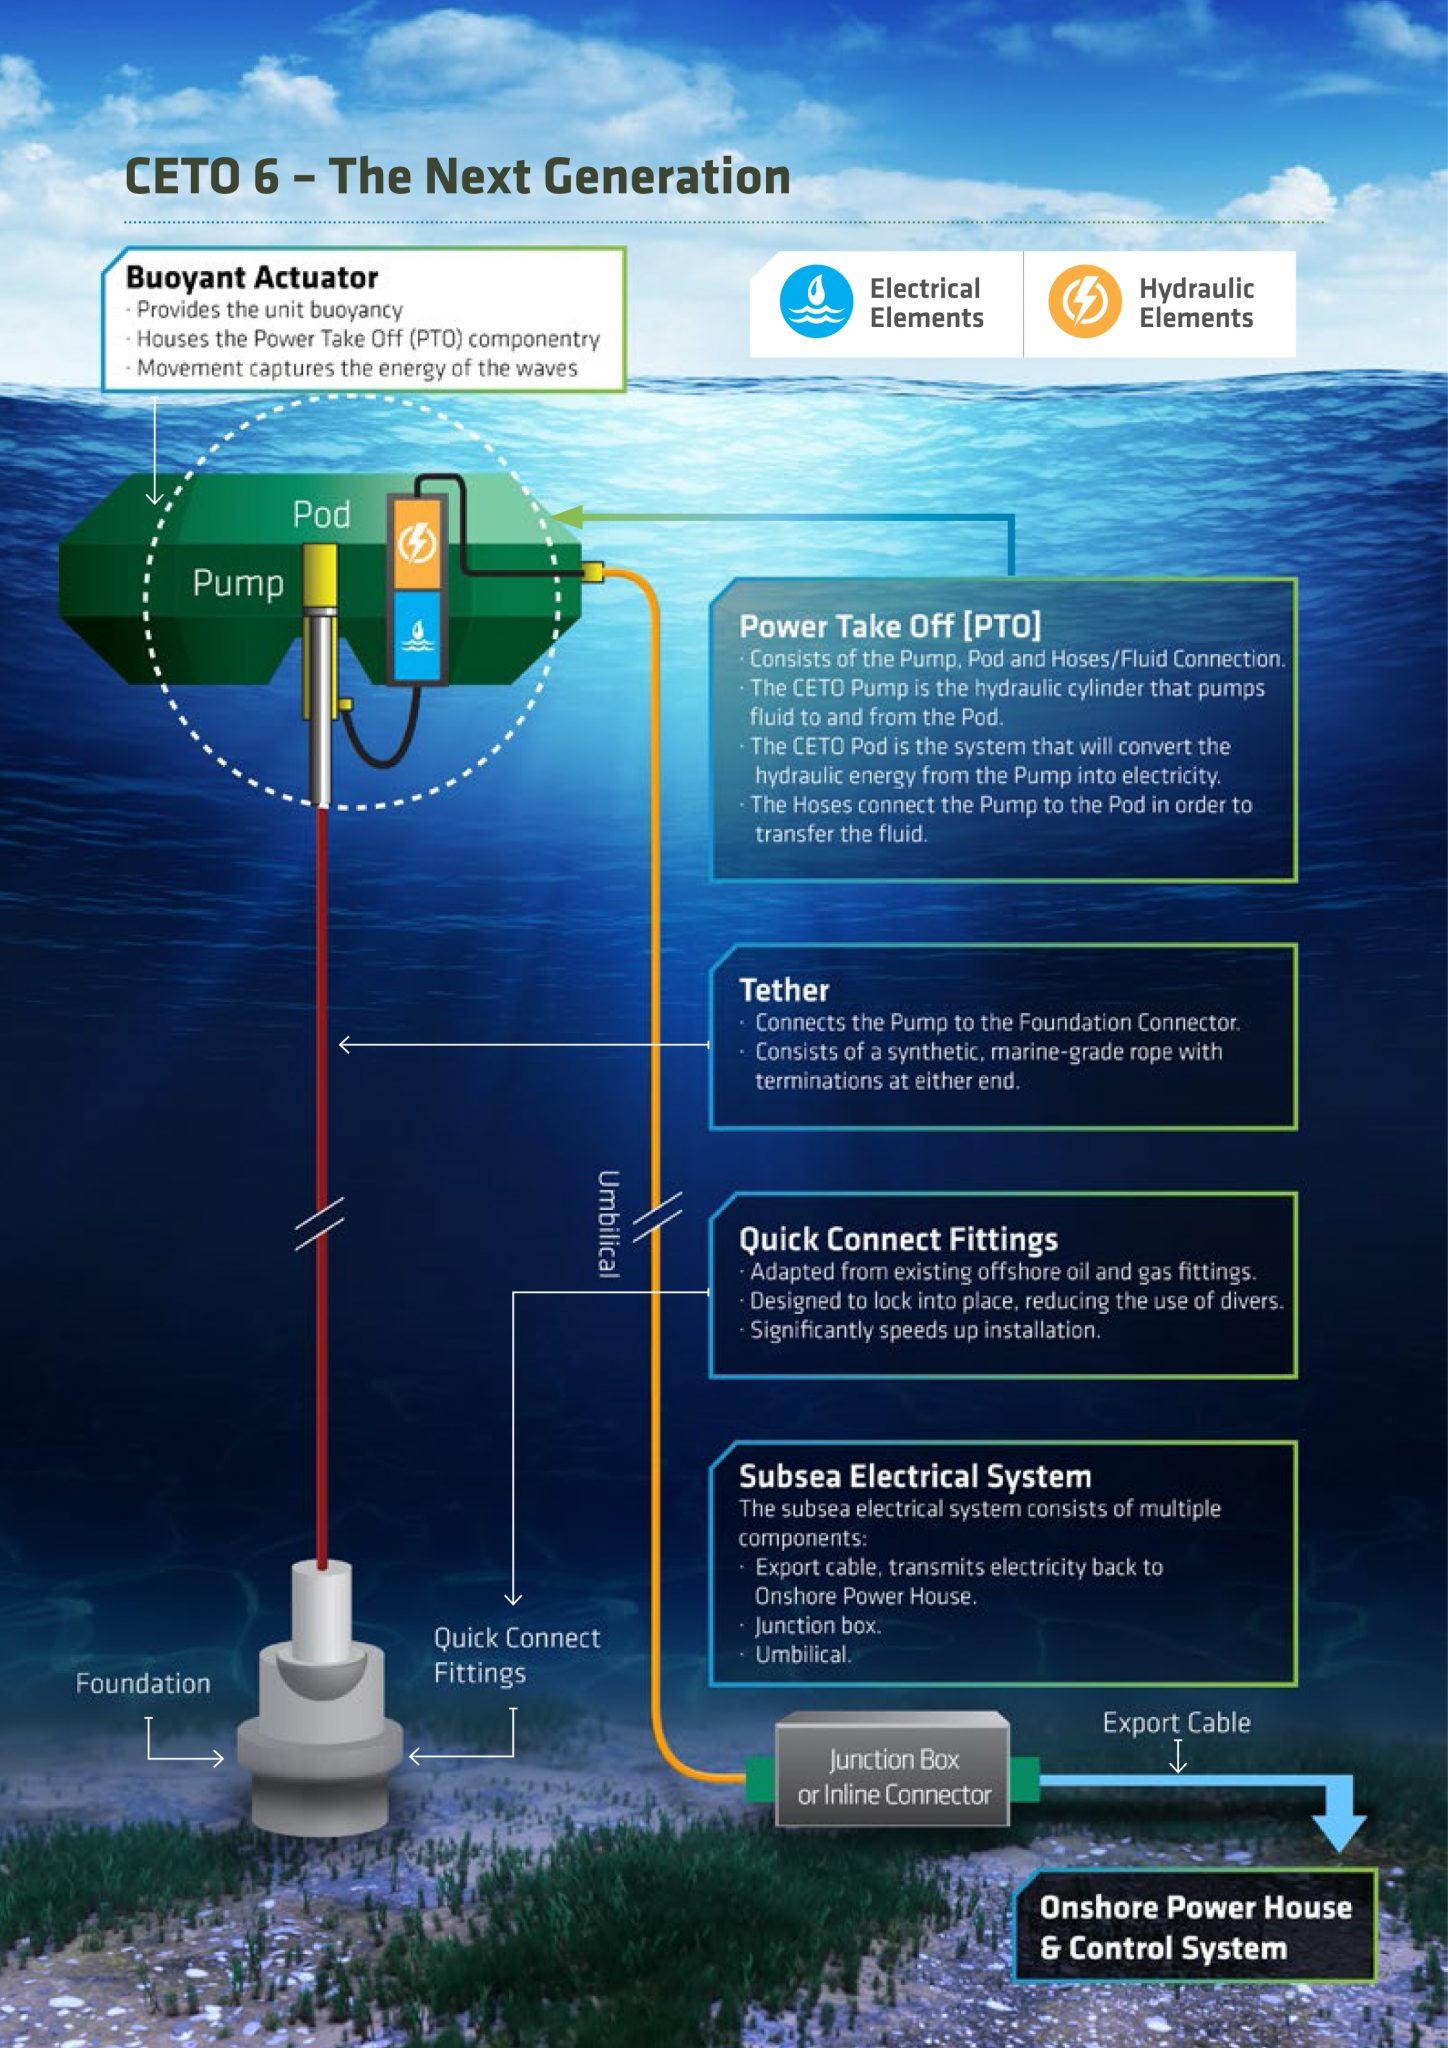 On Advances In The Marine Energy Industry Phlebas Easy To Use Electrical Schematic And Hydraulic Software Of Ceto 6 Concept Image Via Carnegie Clean